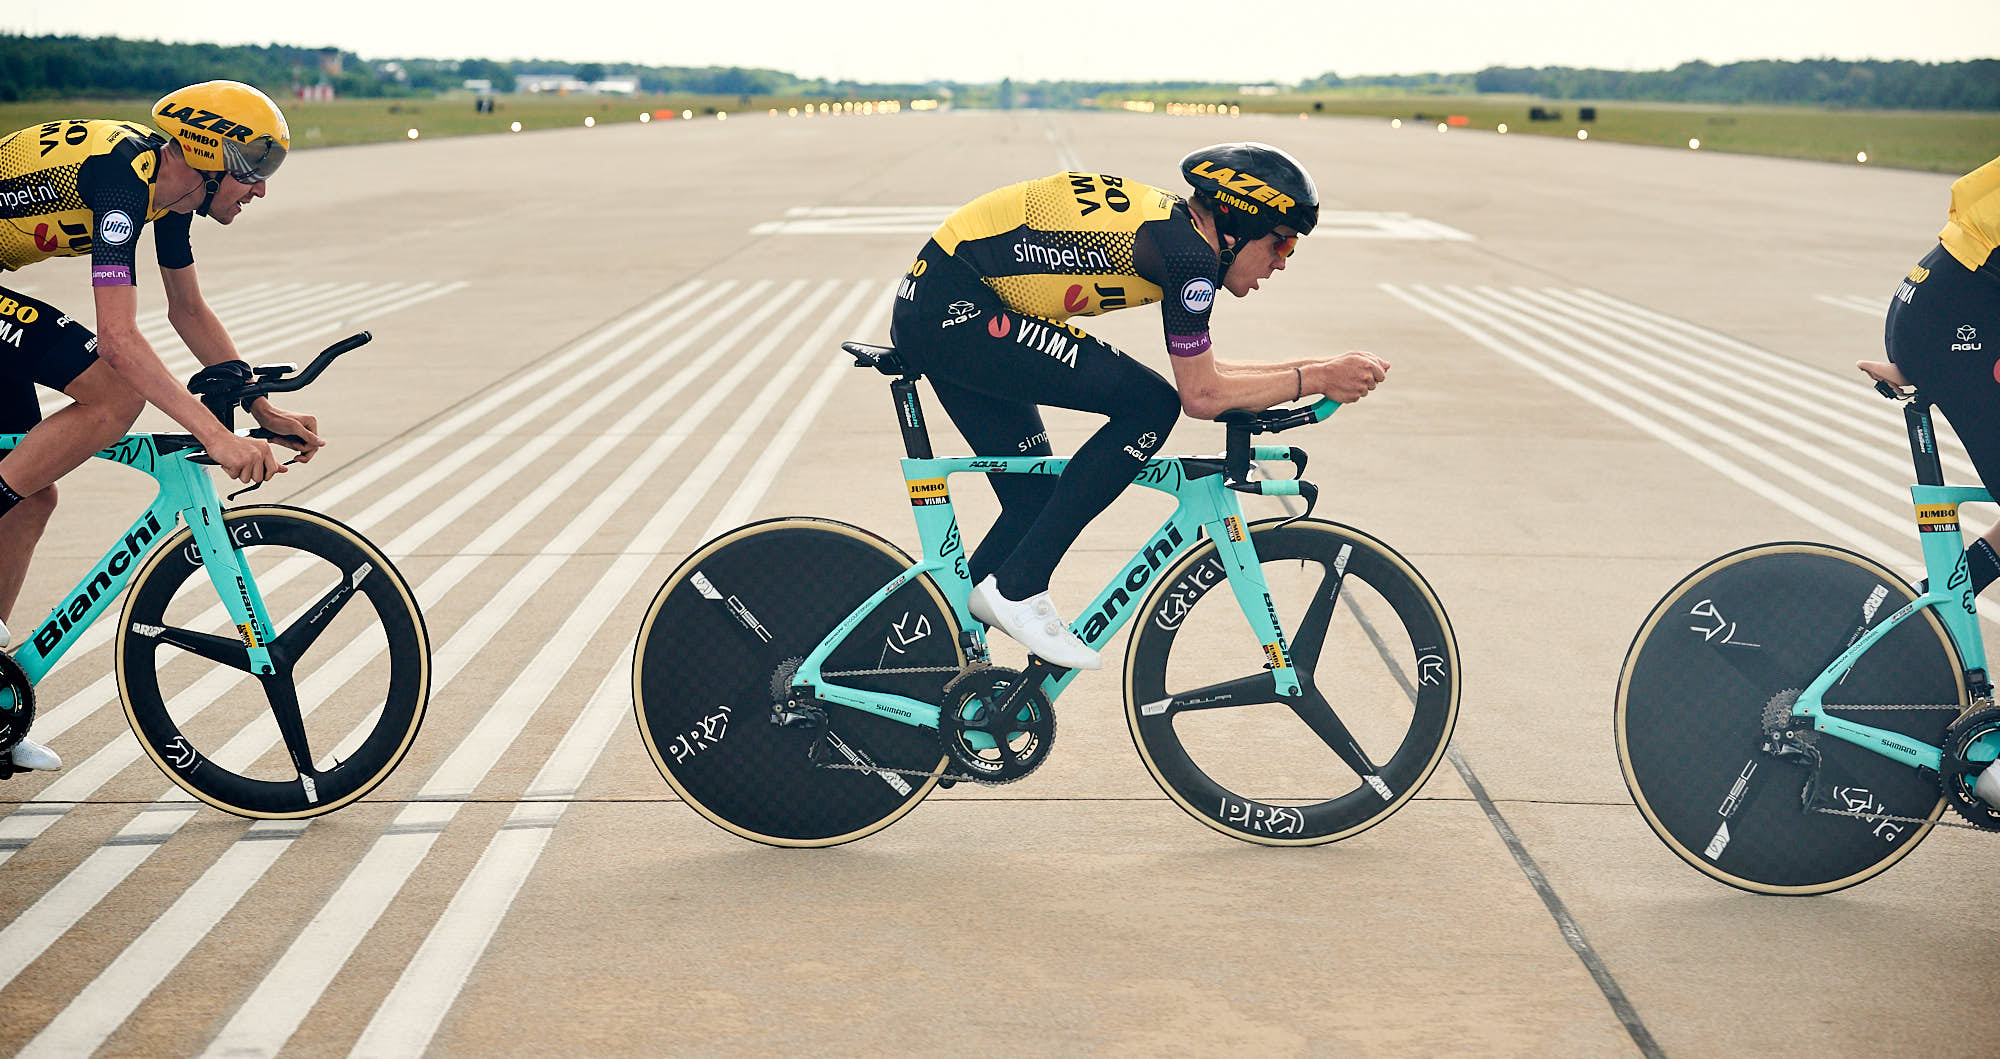 Jumbo-Visma's Steven Kruiswijk perfecting his time trial skills at an airport